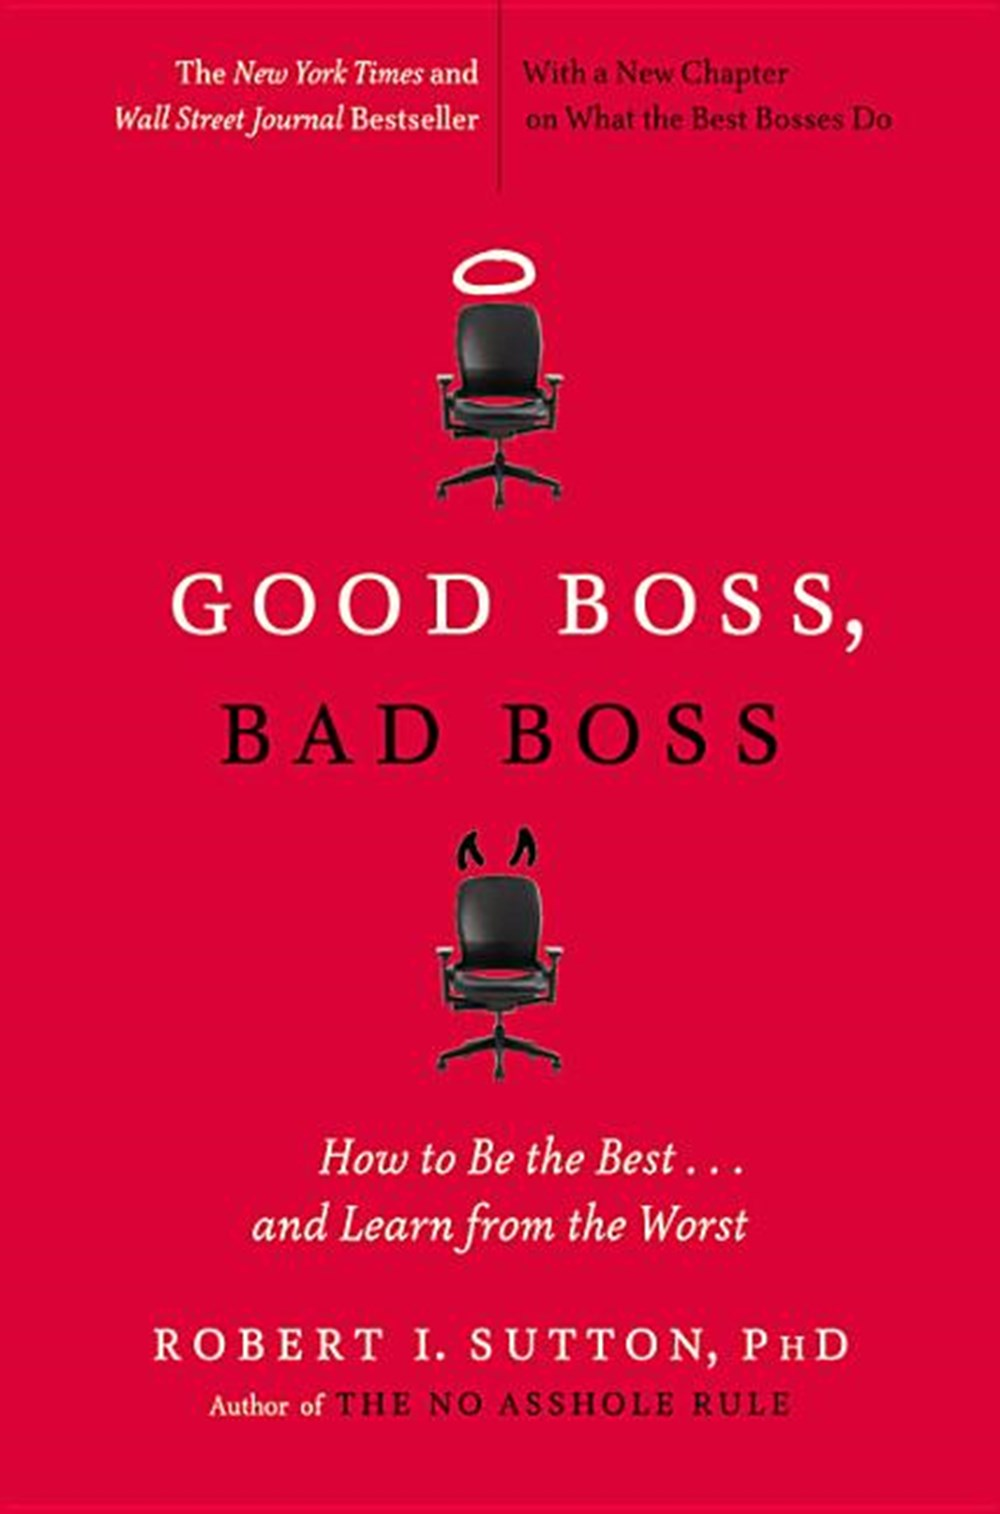 Good Boss, Bad Boss How to Be the Best... and Learn from the Worst